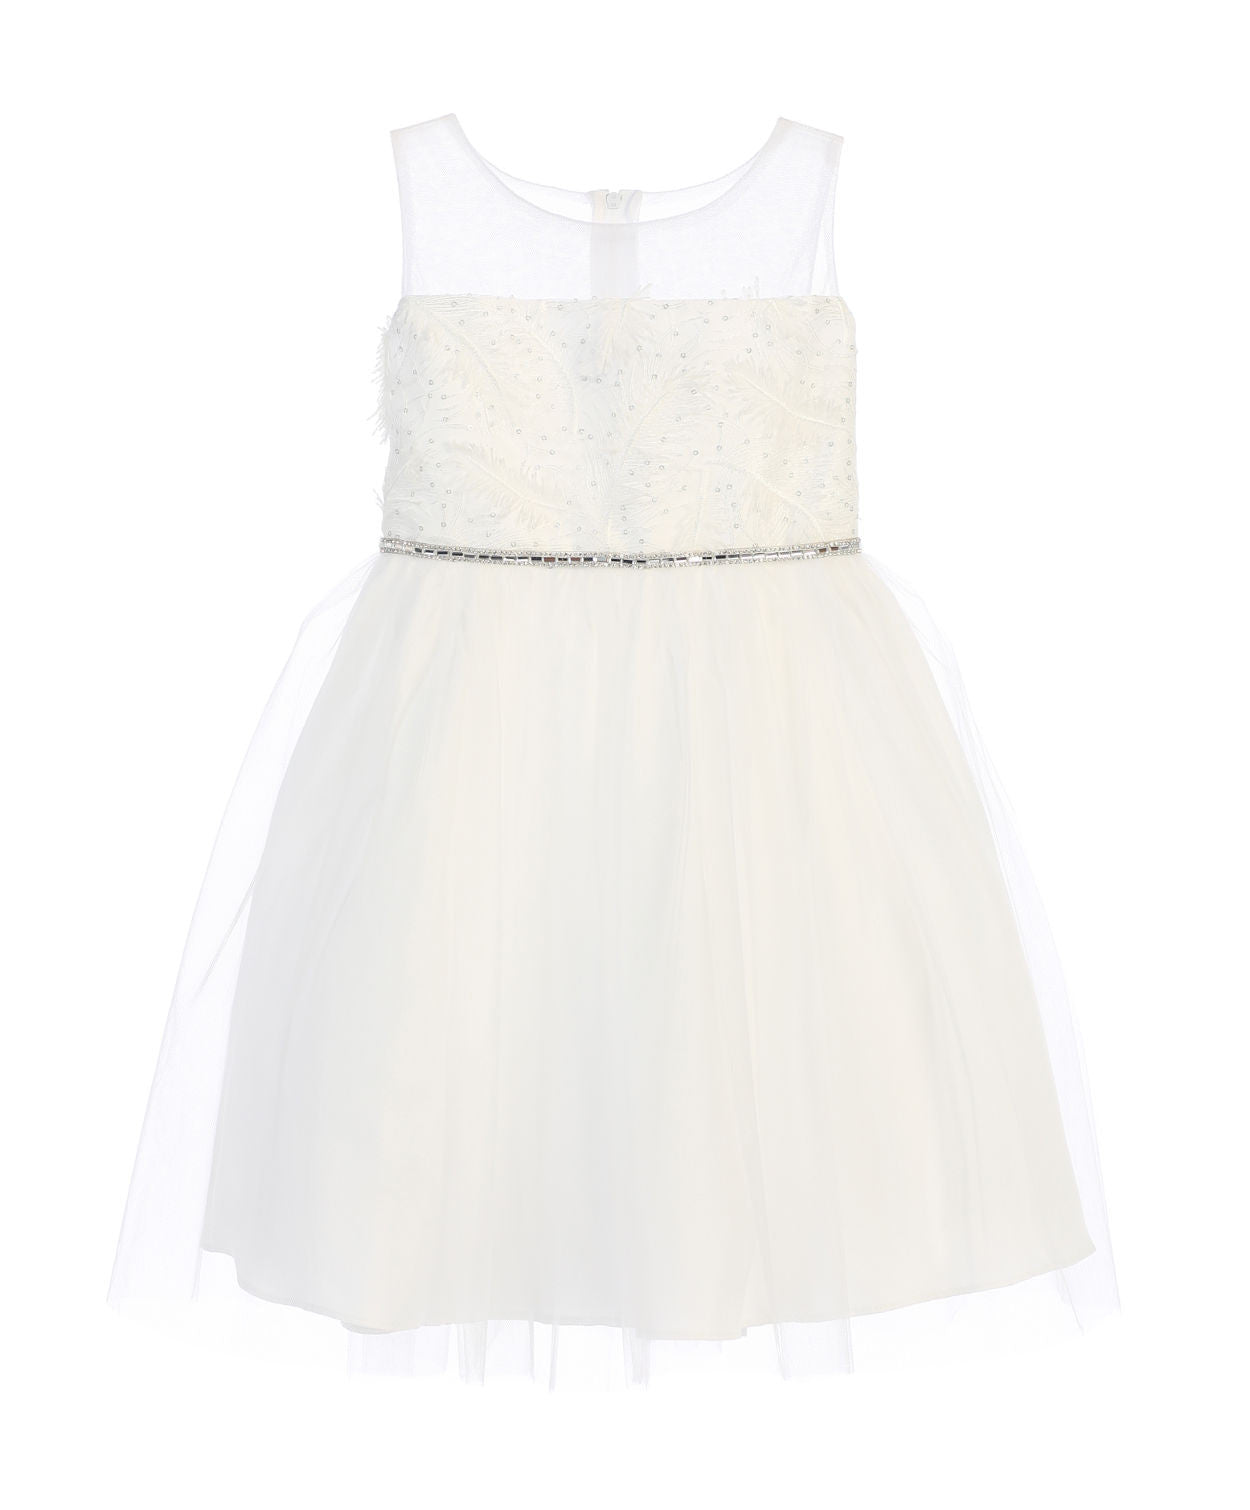 Sweet Kids Feather Patch Top and Mesh Skirt Dress - Off White, SK699